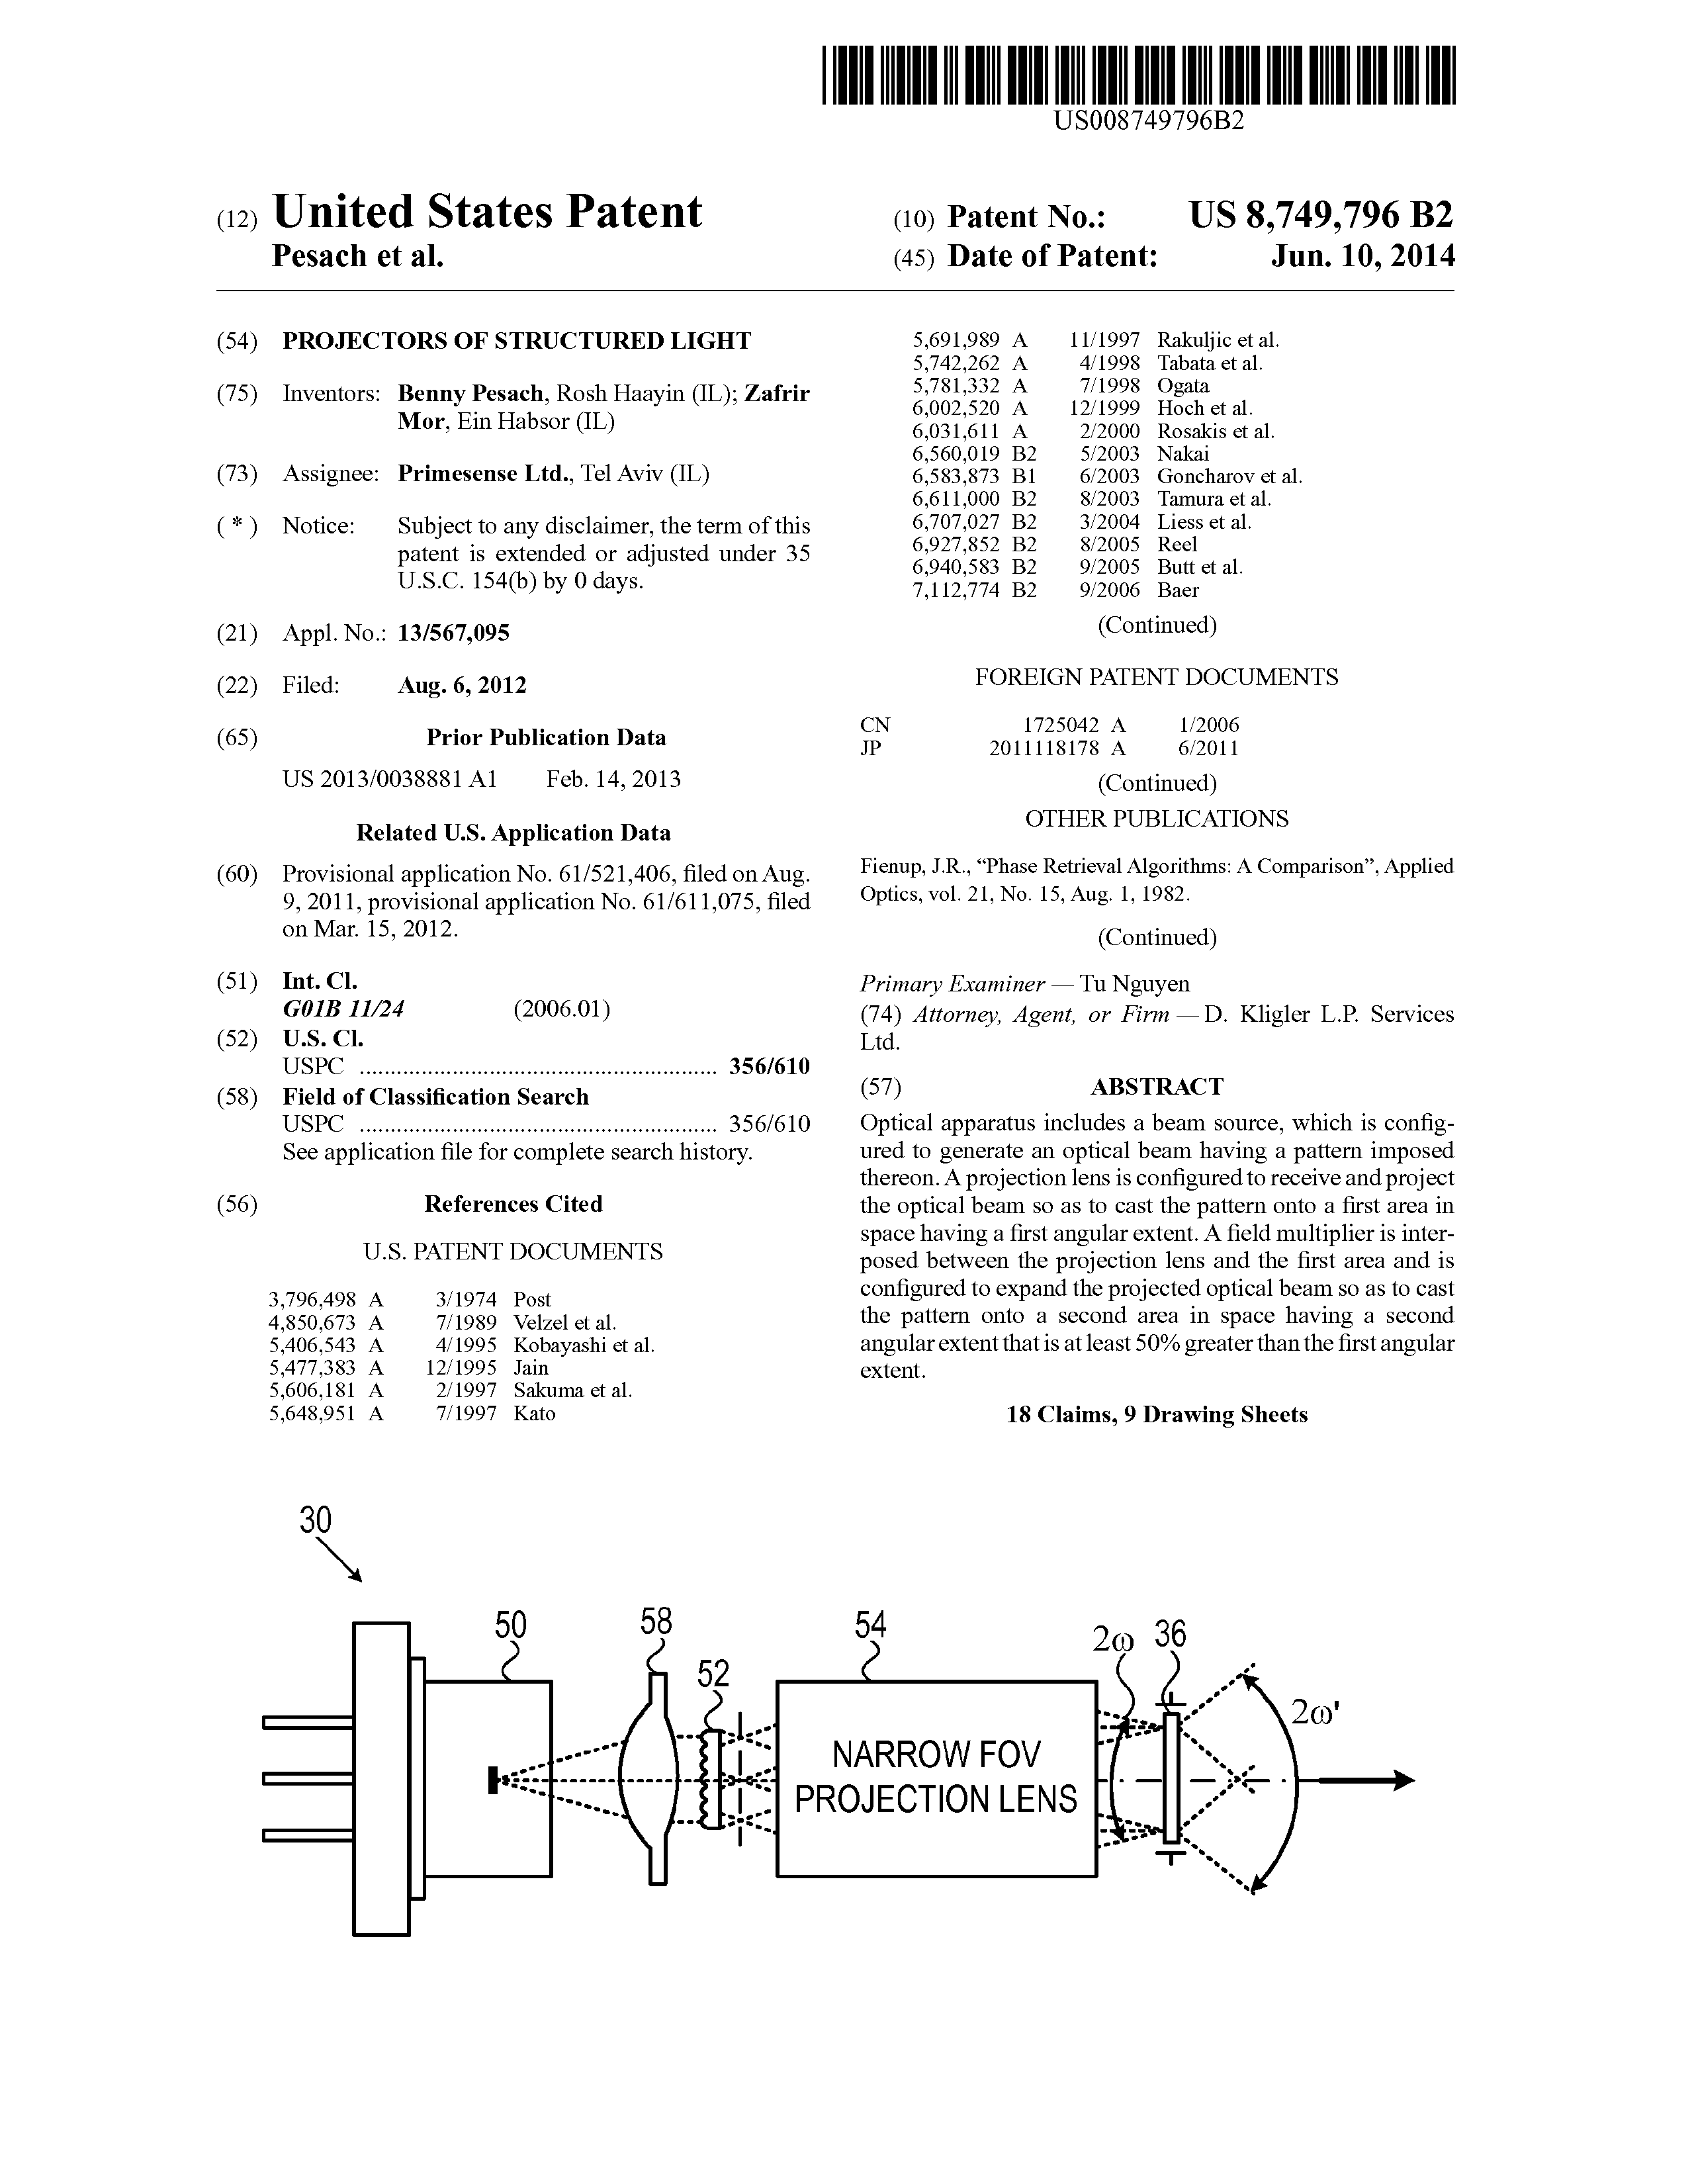 US 8749796 B2 - Projectors Of Structured Light - The Lens - Free